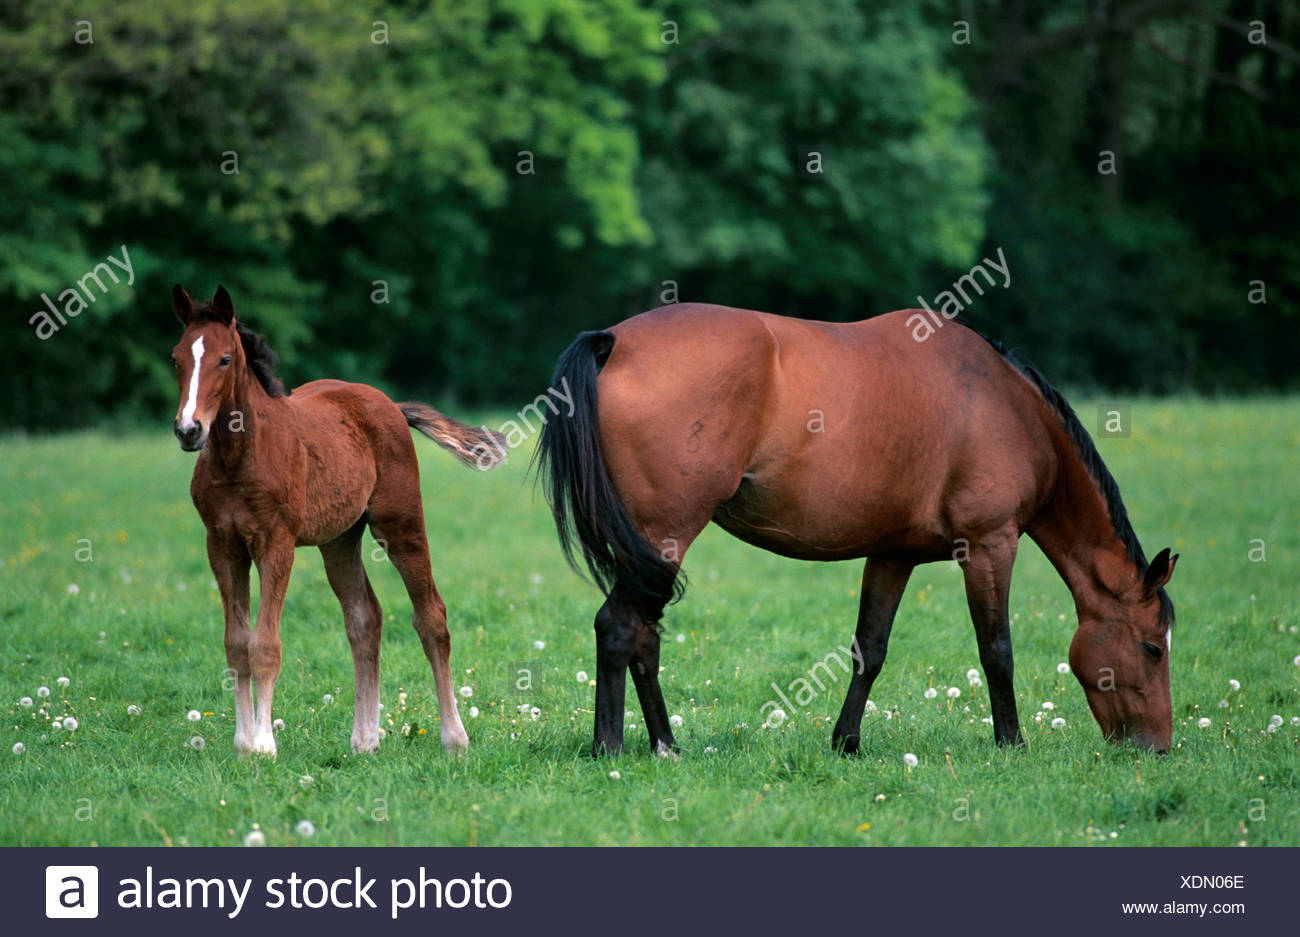 Brown mare with foal, Lower Saxony, Germany, Europe - Stock Image